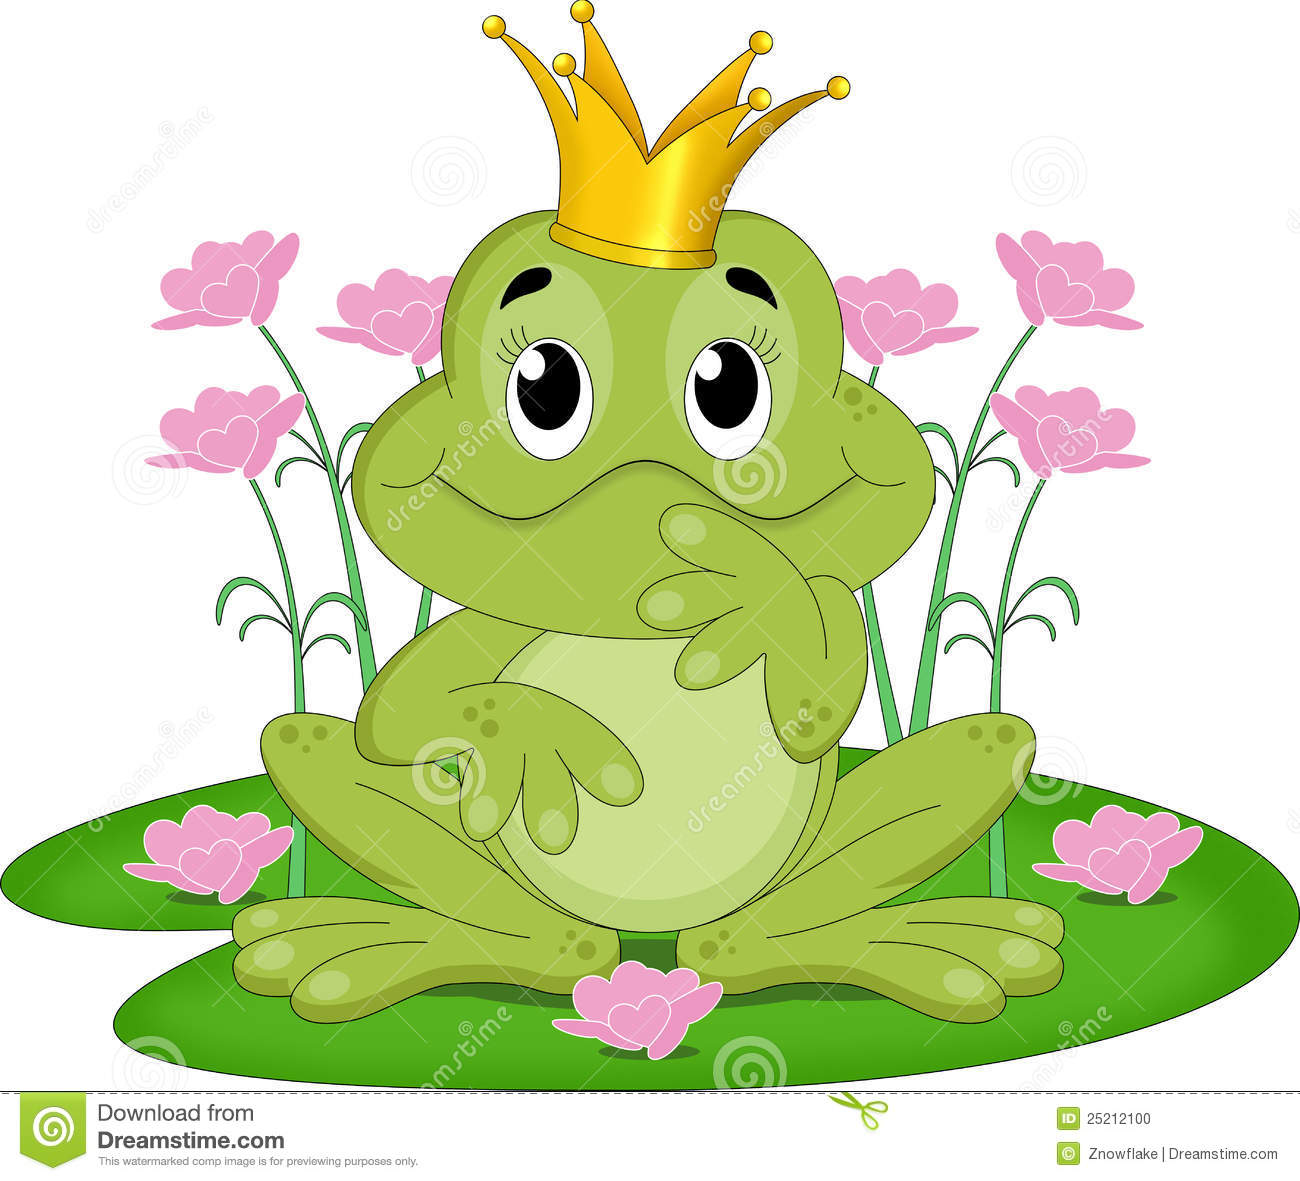 Fairy Tale Frog Clipart Fairytale Frog King